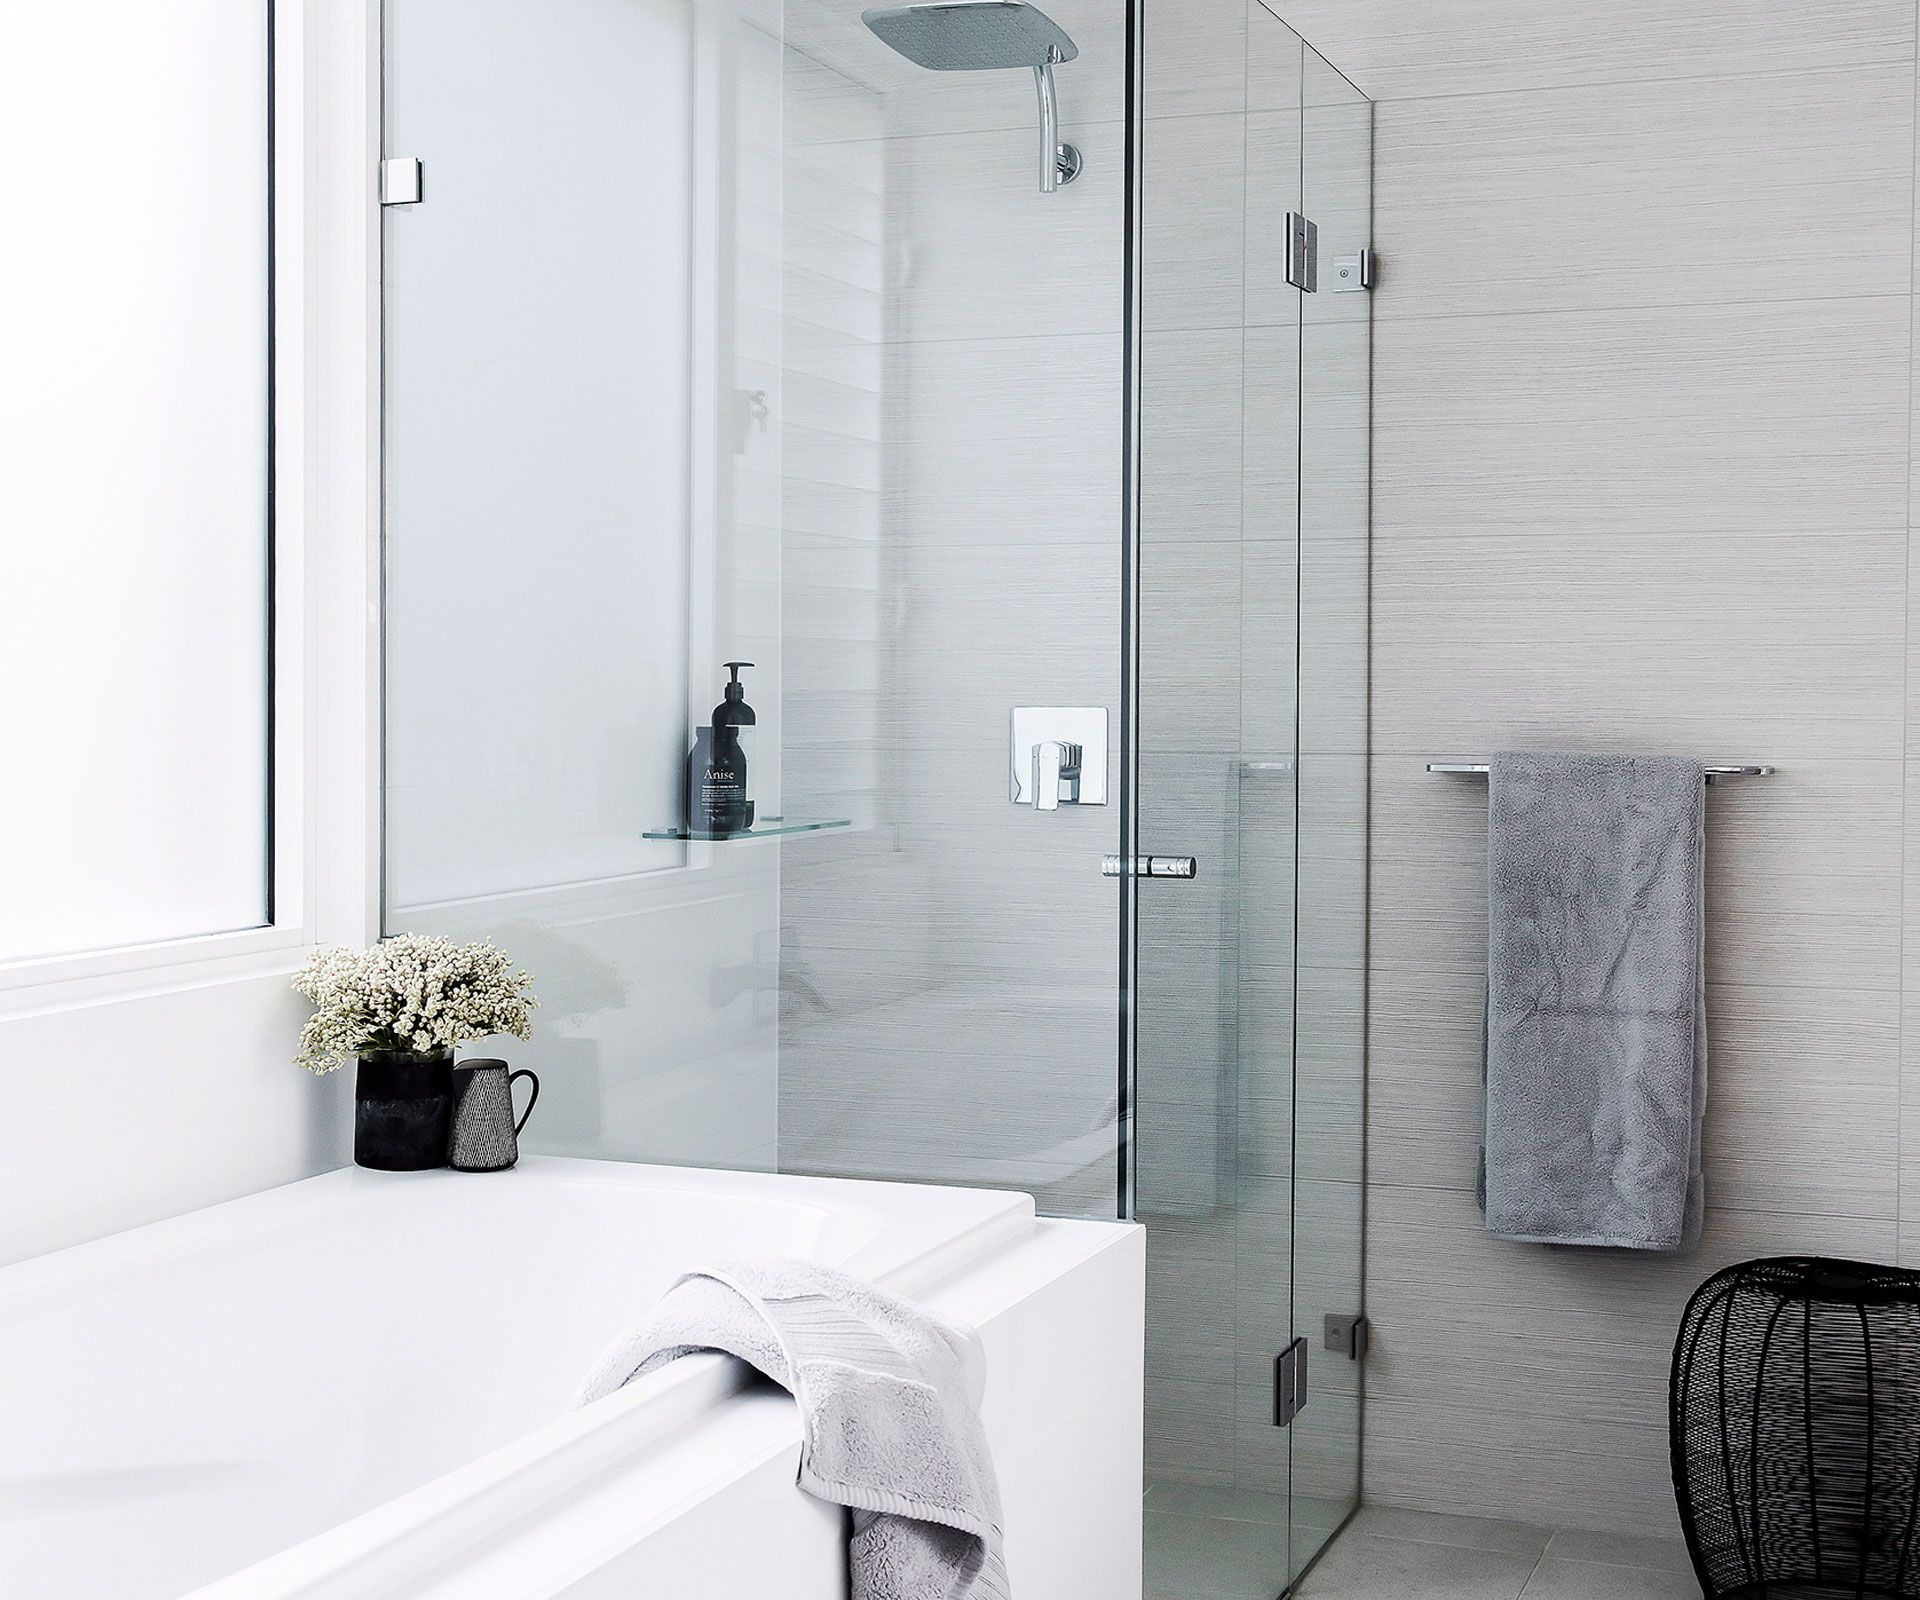 Heres how to get a grubby shower squeaky clean without